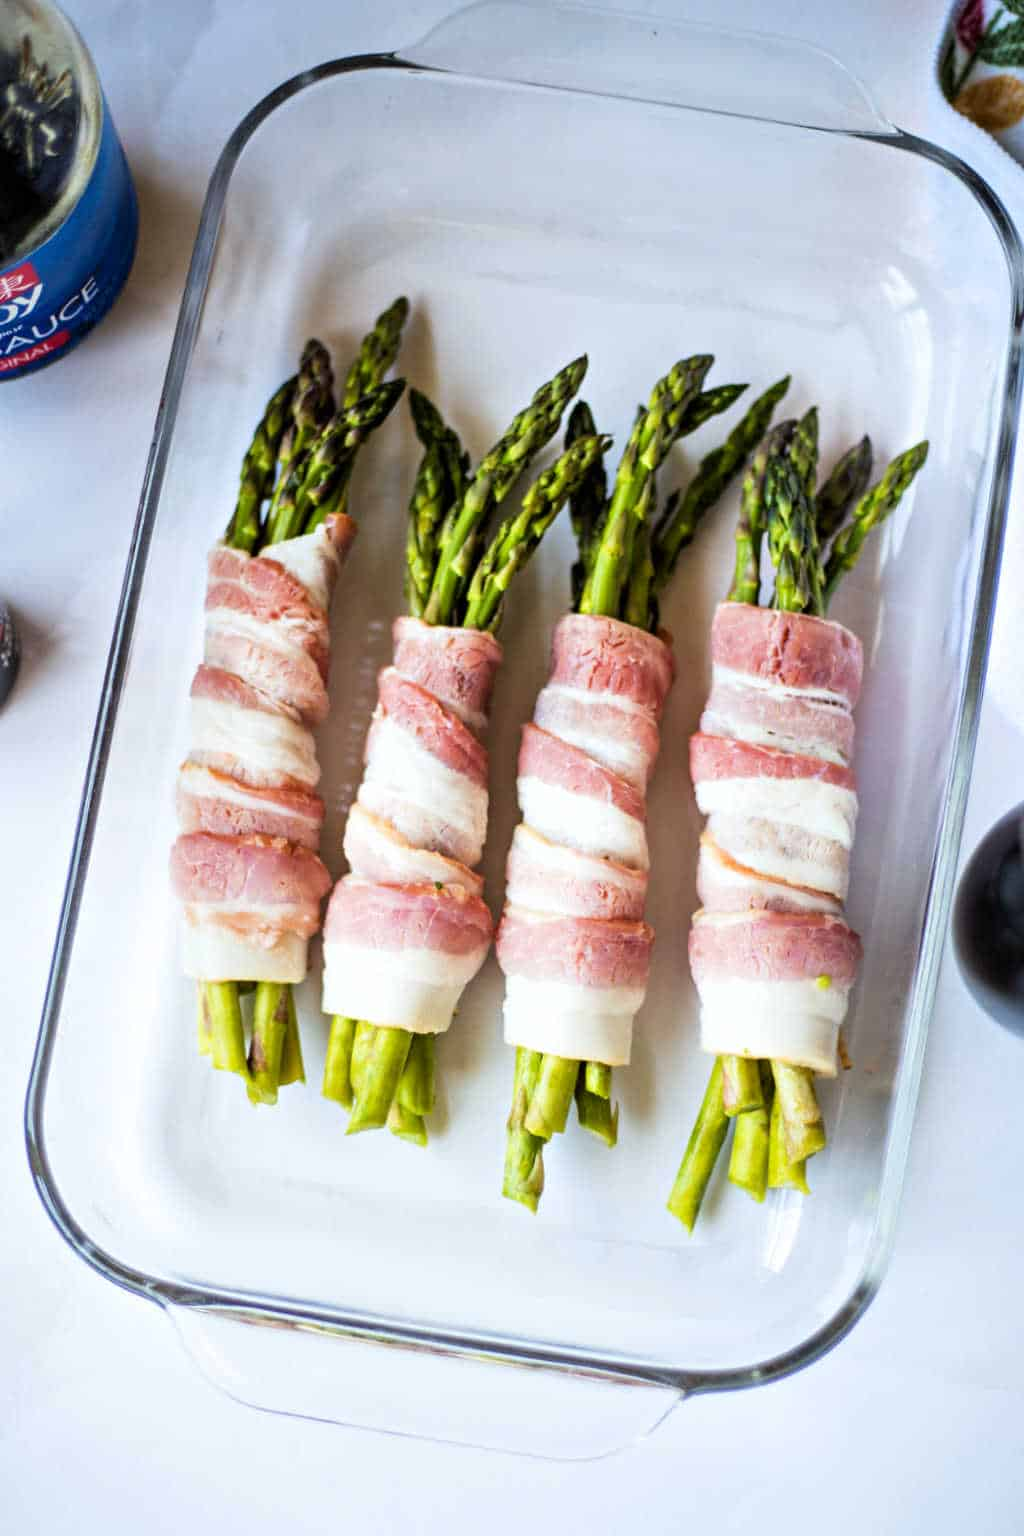 asparagus wrapped in raw bacon in a baking dish